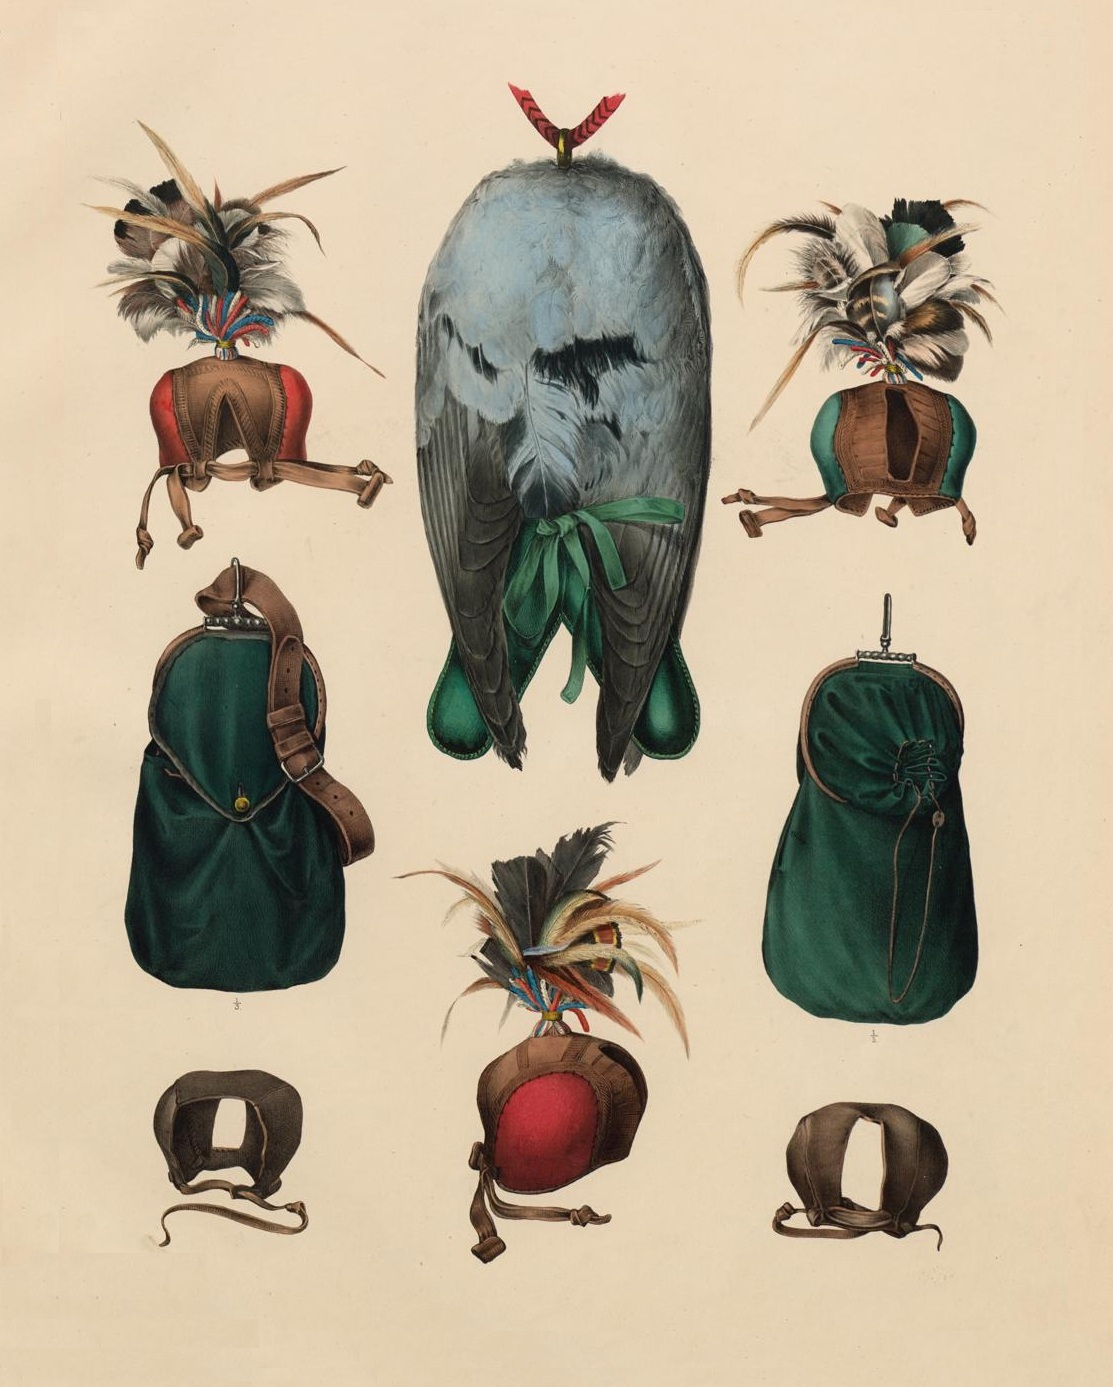 Falcon hoodwear in 'Traité de Fauconnerie' by H Schlegel, 1853